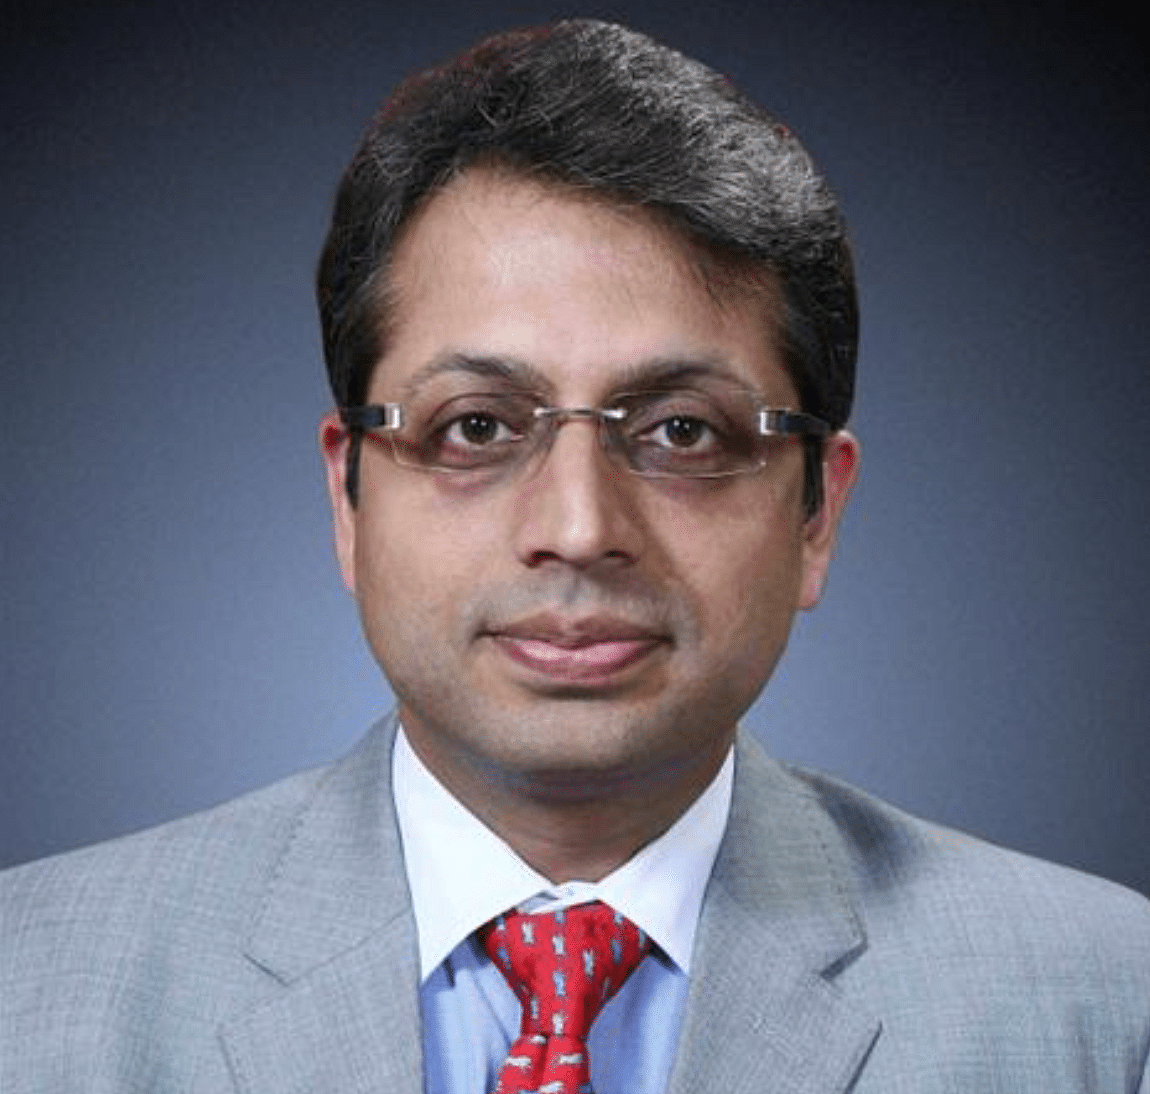 [Exclusive]: Cyril Amarchand Mangaldas Delhi Partner Manishi Pathak resigns